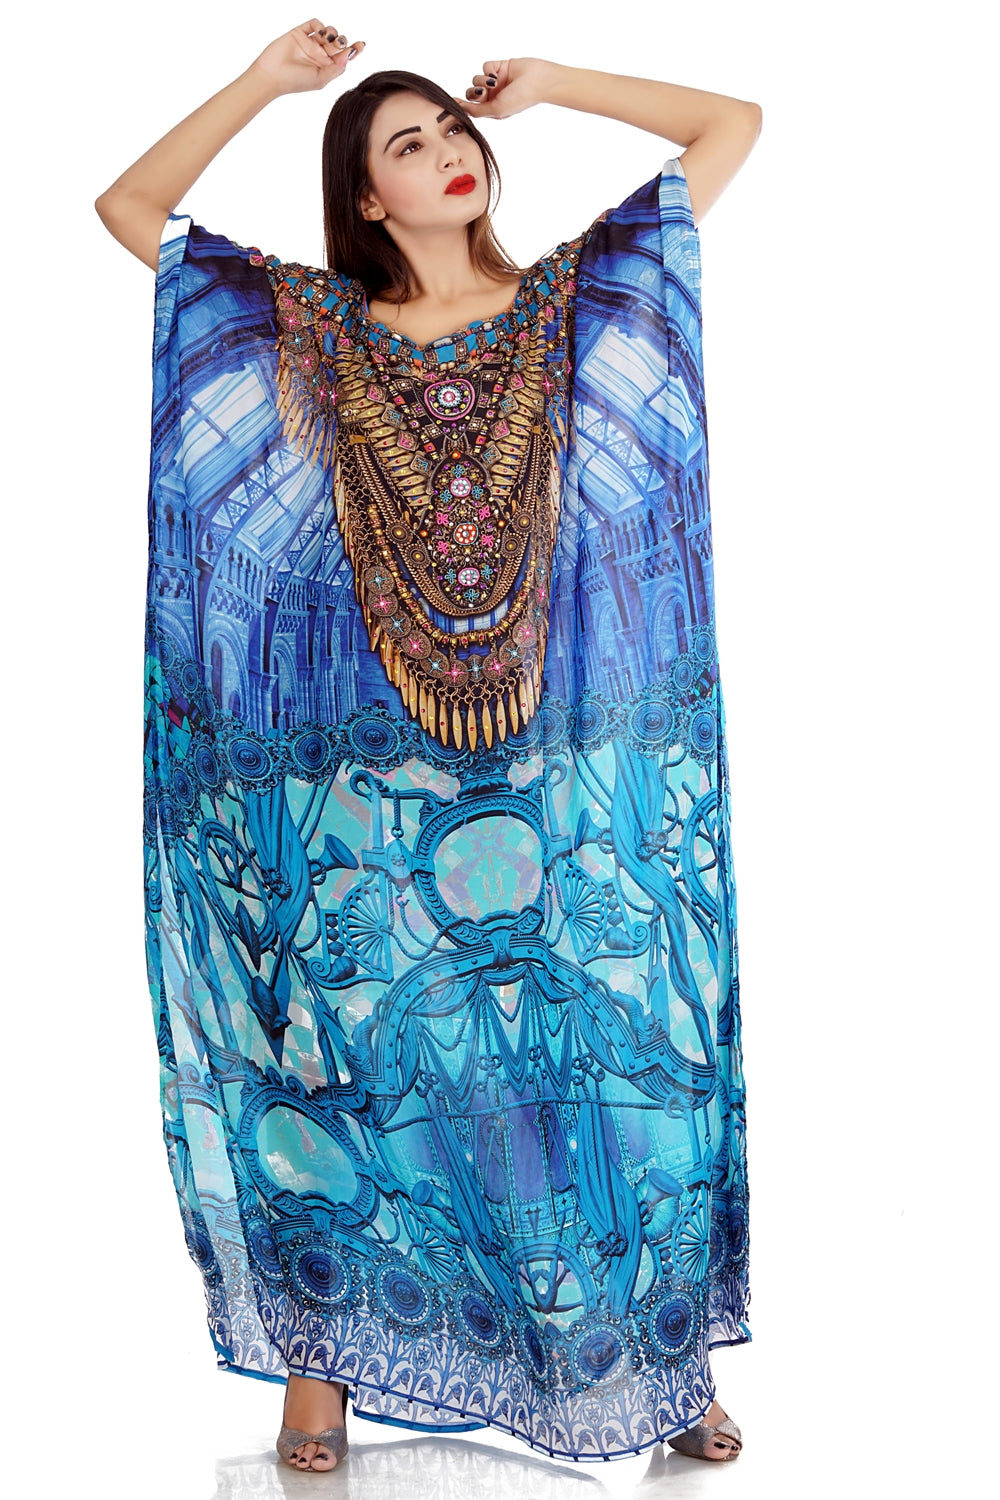 Inspired by Catchy Porcelain Print Uniquely Designed Turquoise Print - Silk kaftan